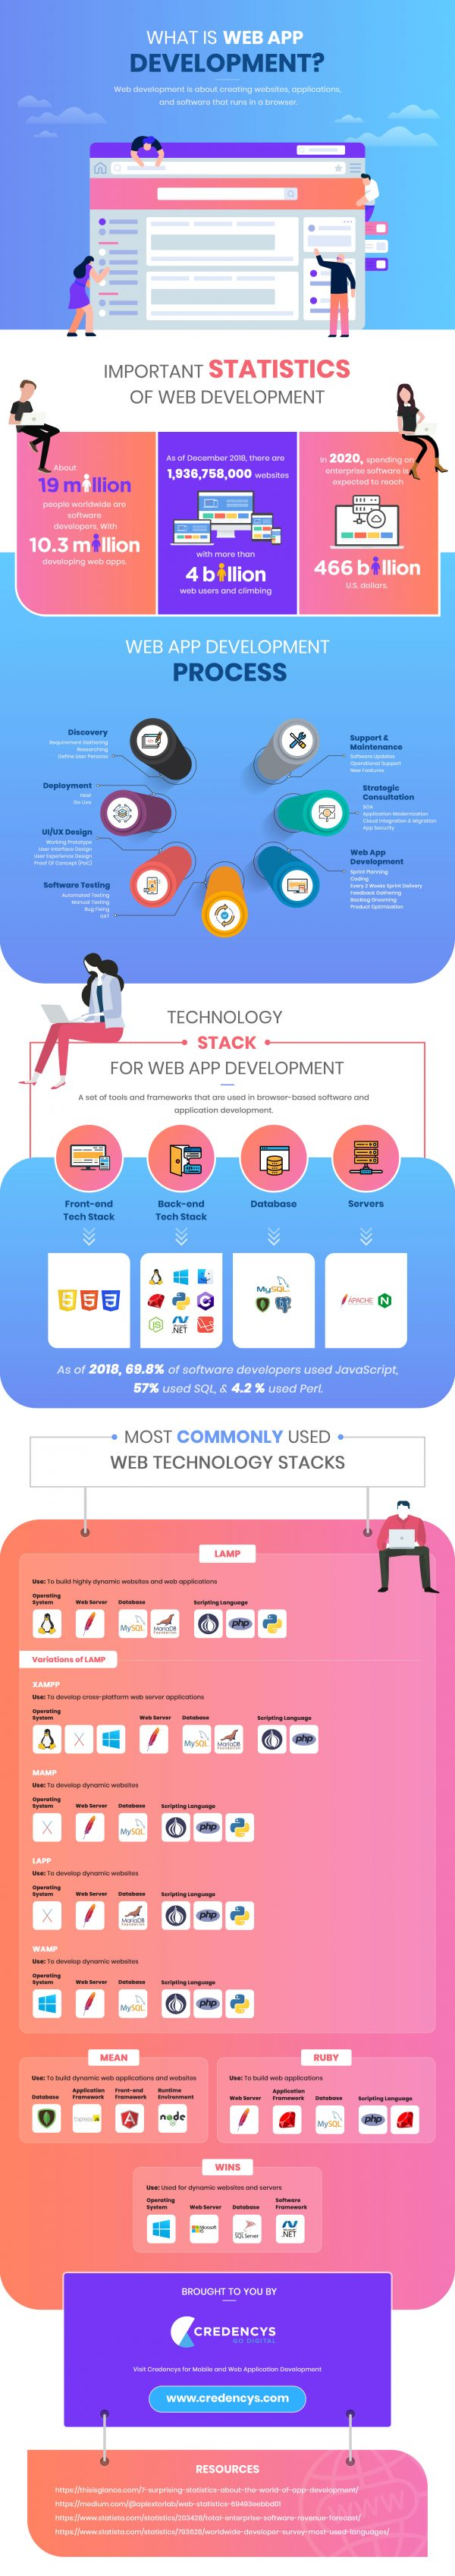 best way to develop web applications